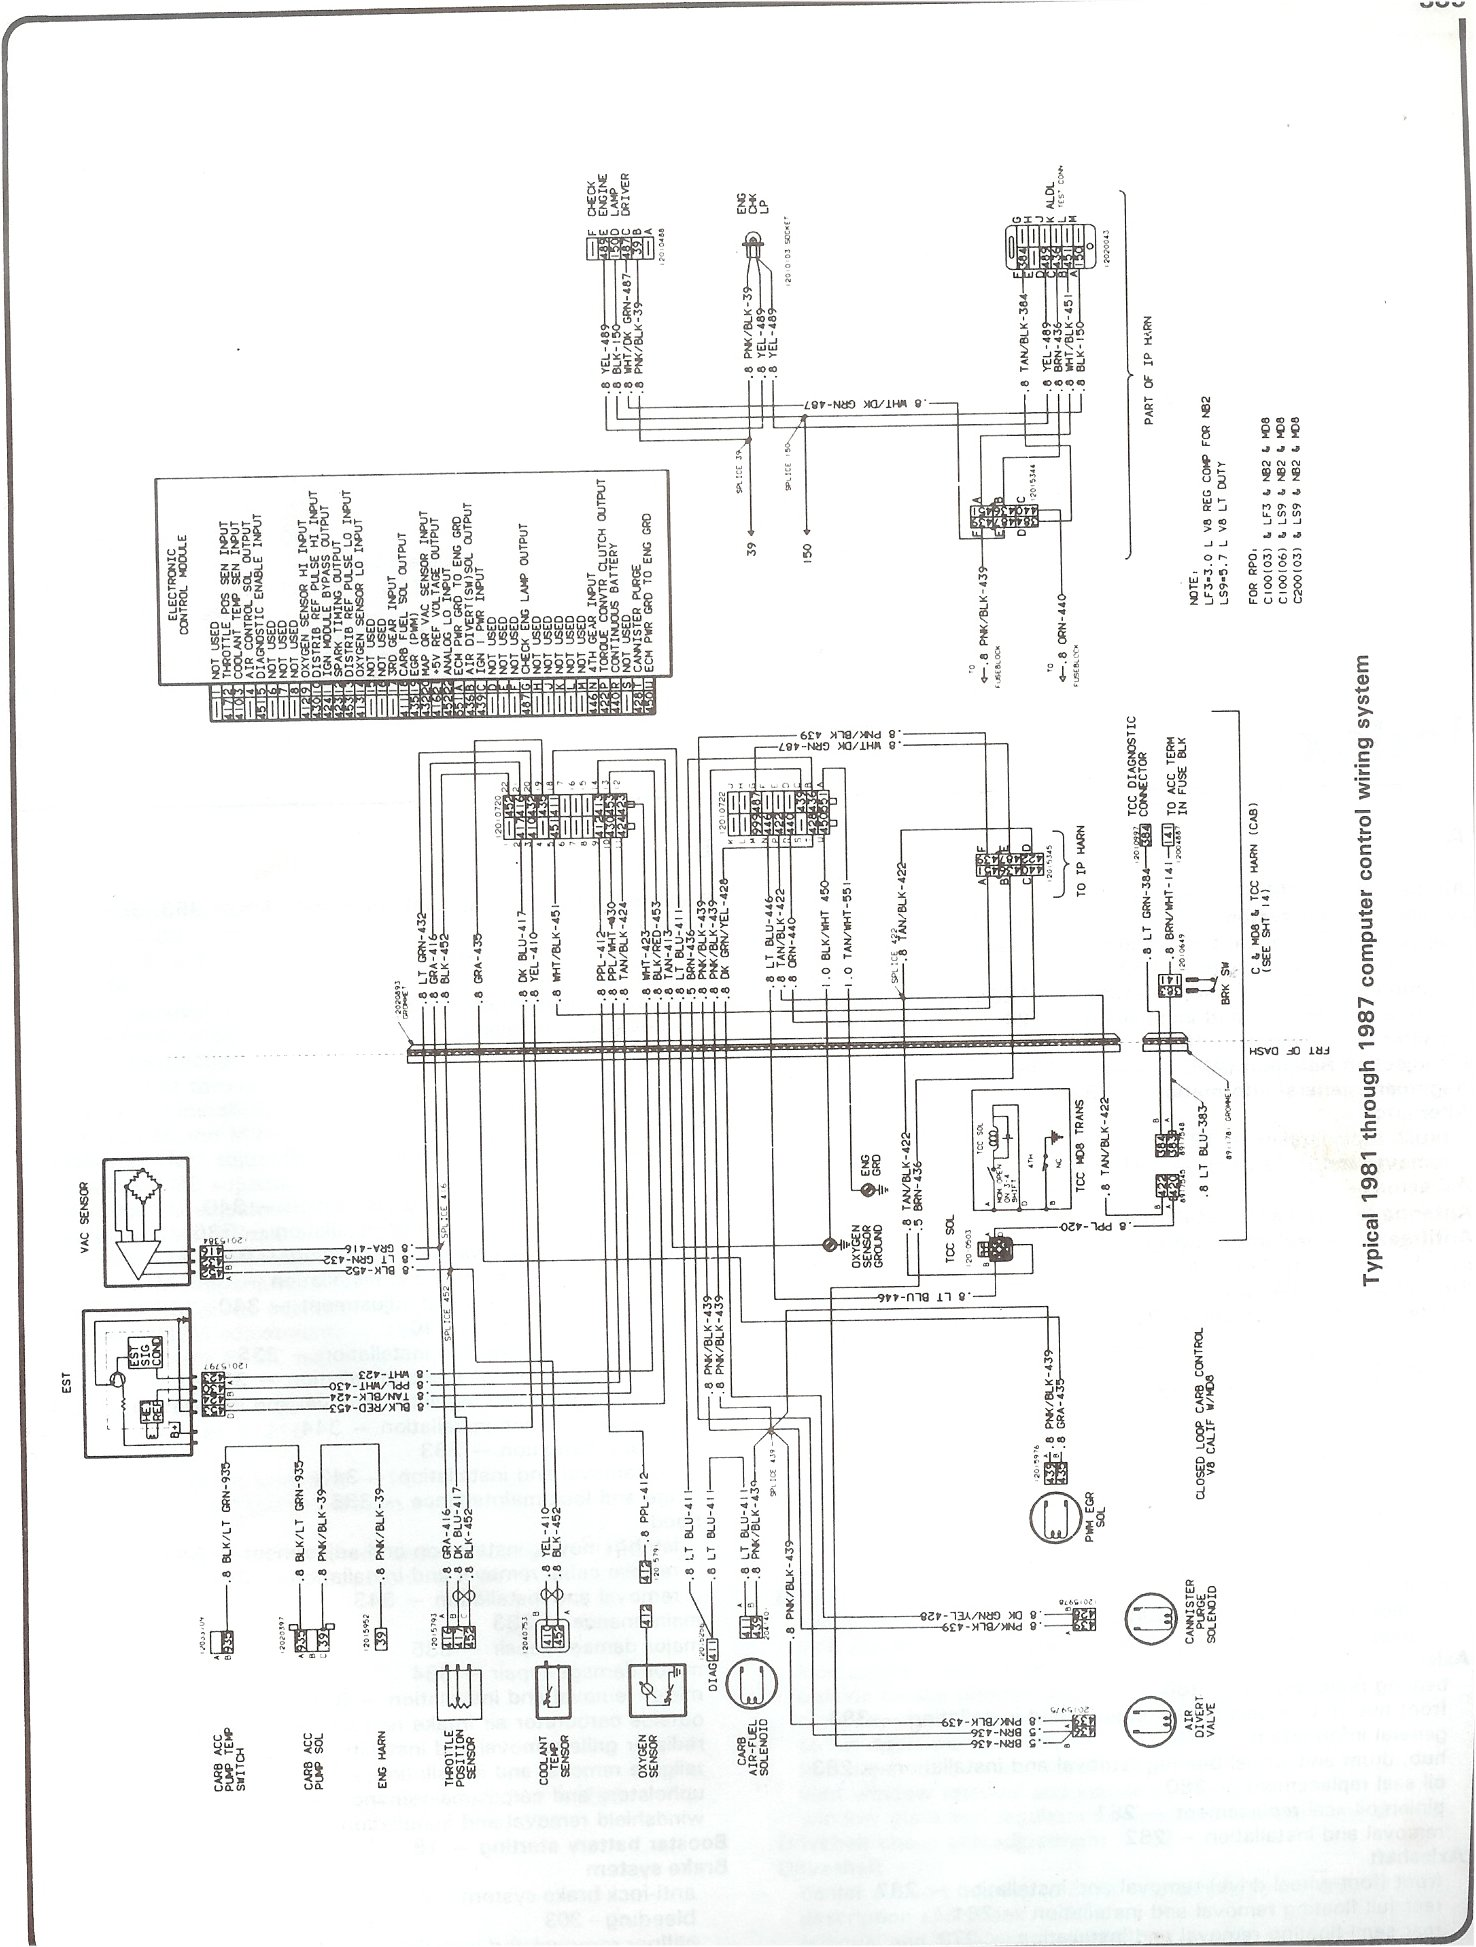 Complete 73 87 Wiring Diagrams Dodge Ram Harness Cab Light 81 Computer Control